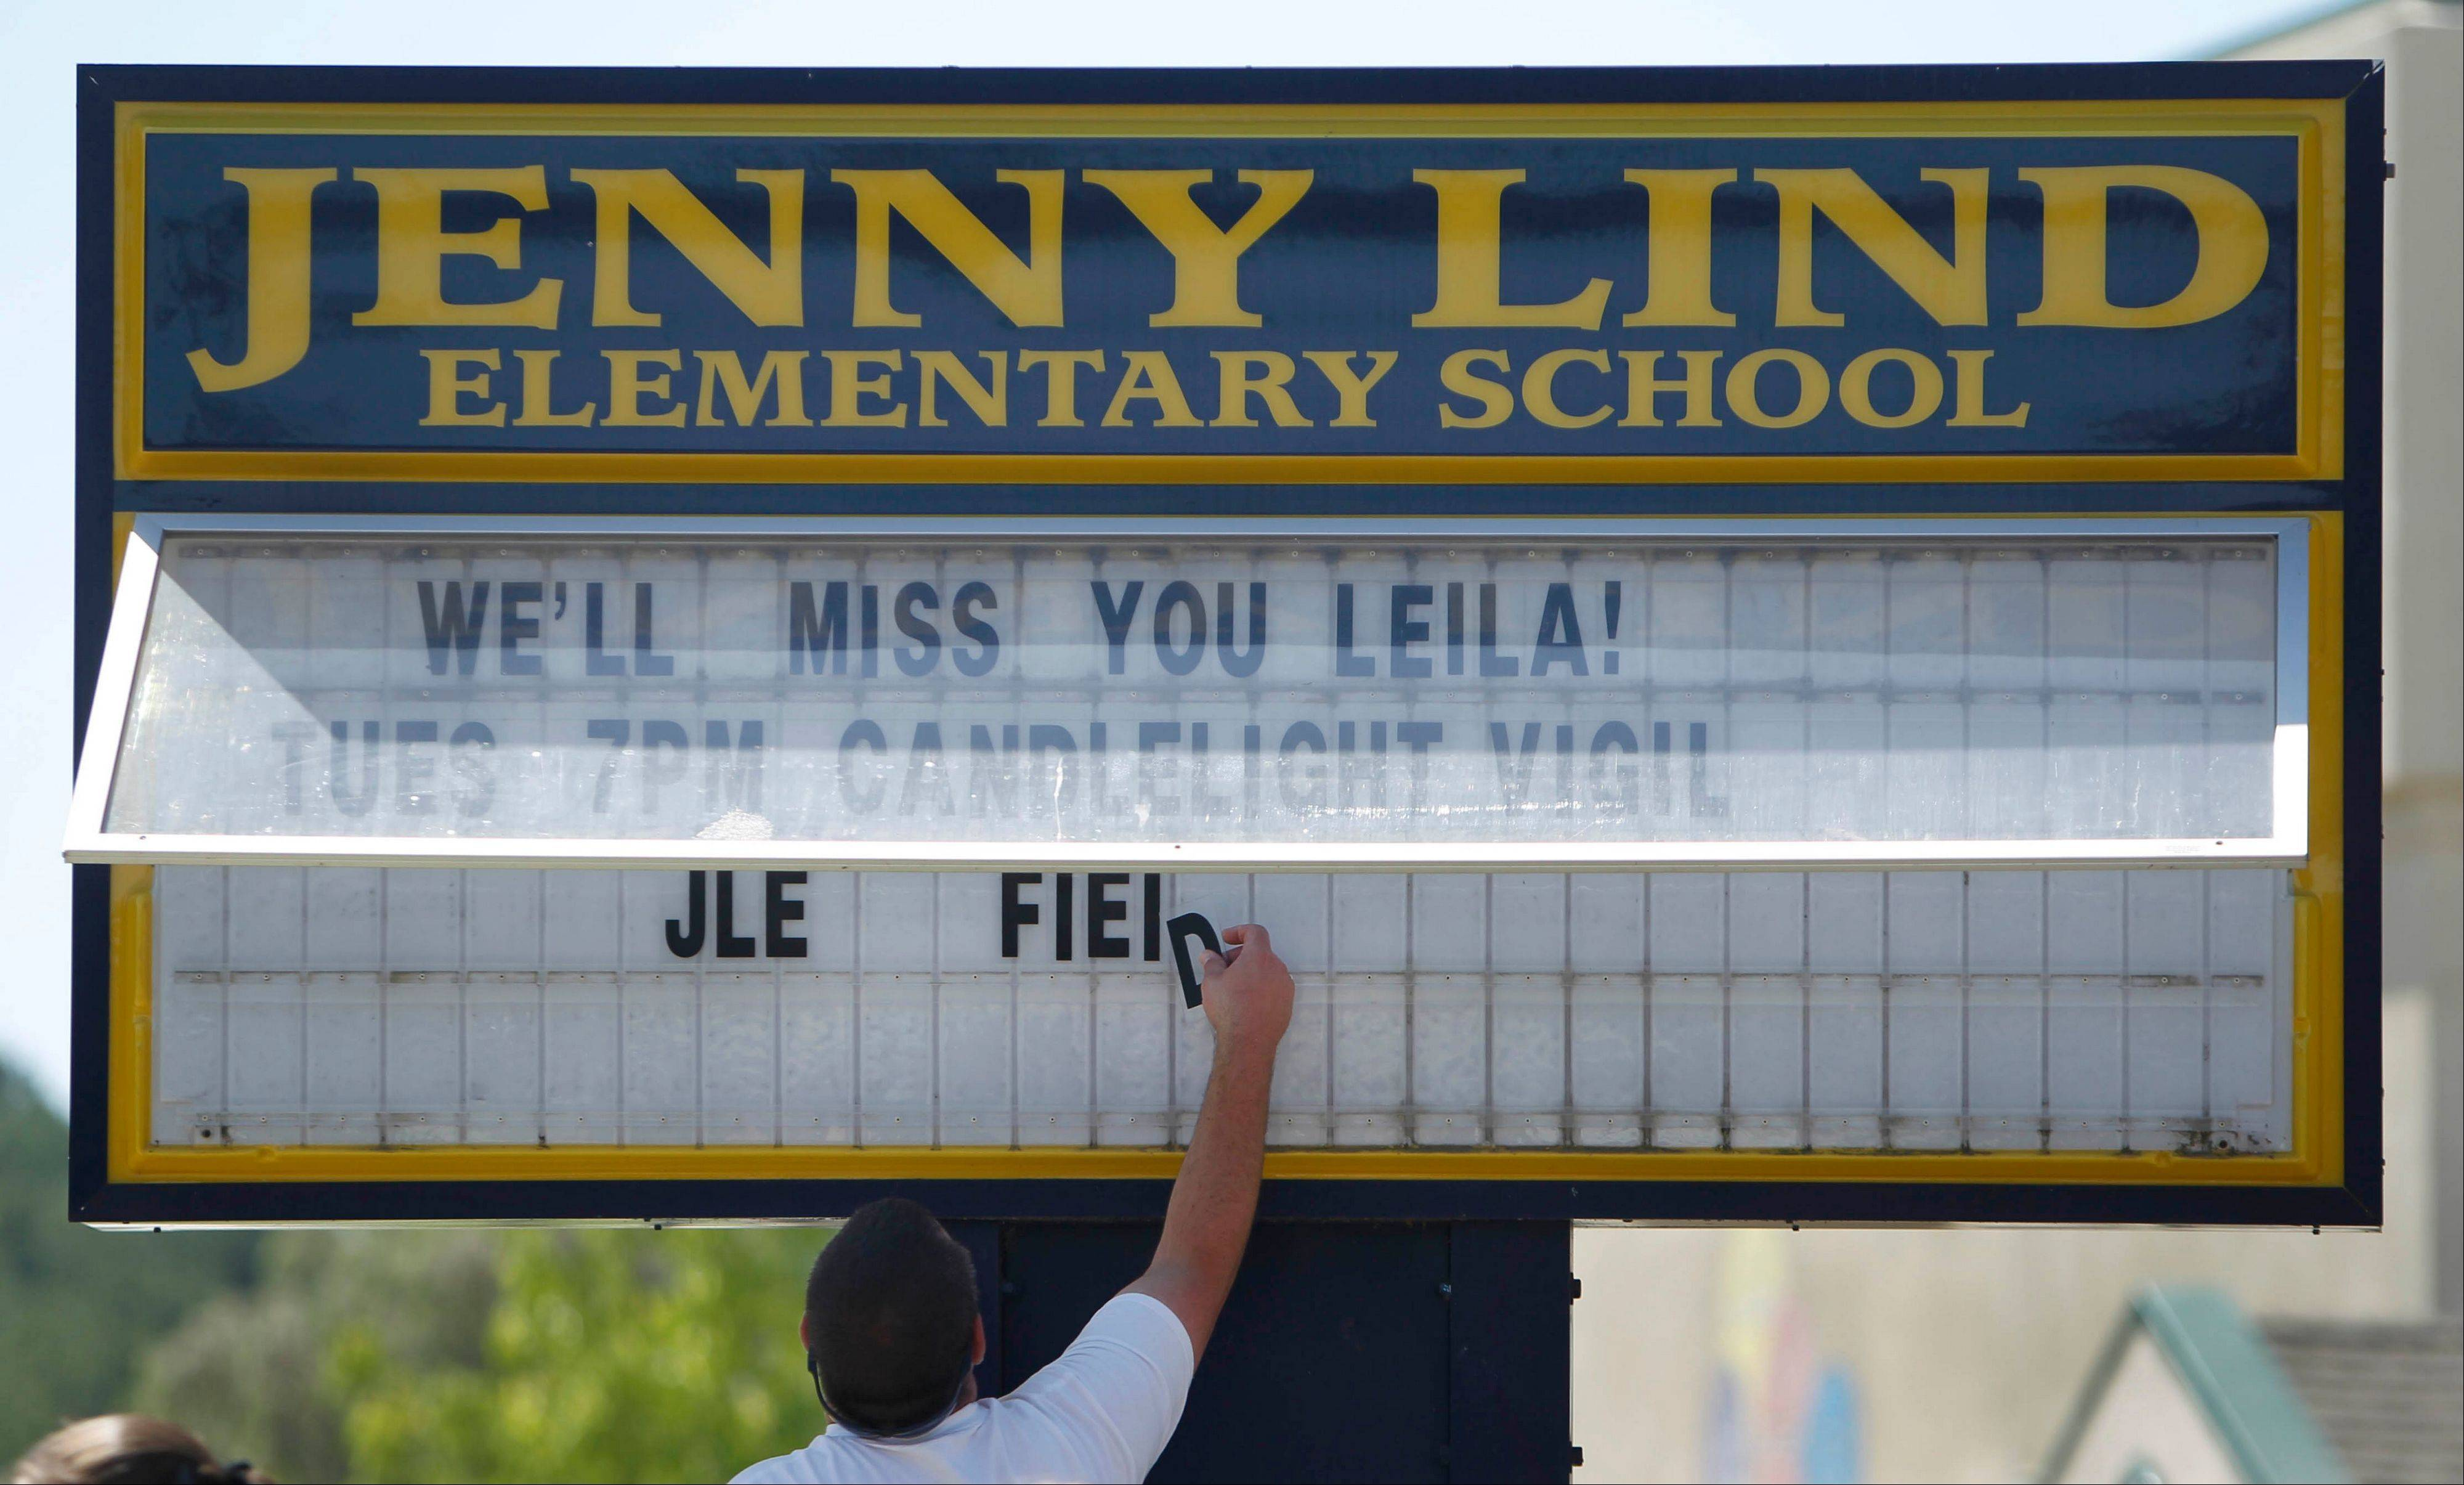 Patrick Foley, head custodian at Jenny Lind Elementary School, puts up a sign about a candlelight vigil to be help for Leila Fowler, in Valley Springs, Calif., Monday, April 29, 2013. Authorities are searching for the killer of Fowler, 8, a third-grader at Jenny Lind, who was found dead by her 12-year-old brother in the family�s Valley Springs home Saturday.